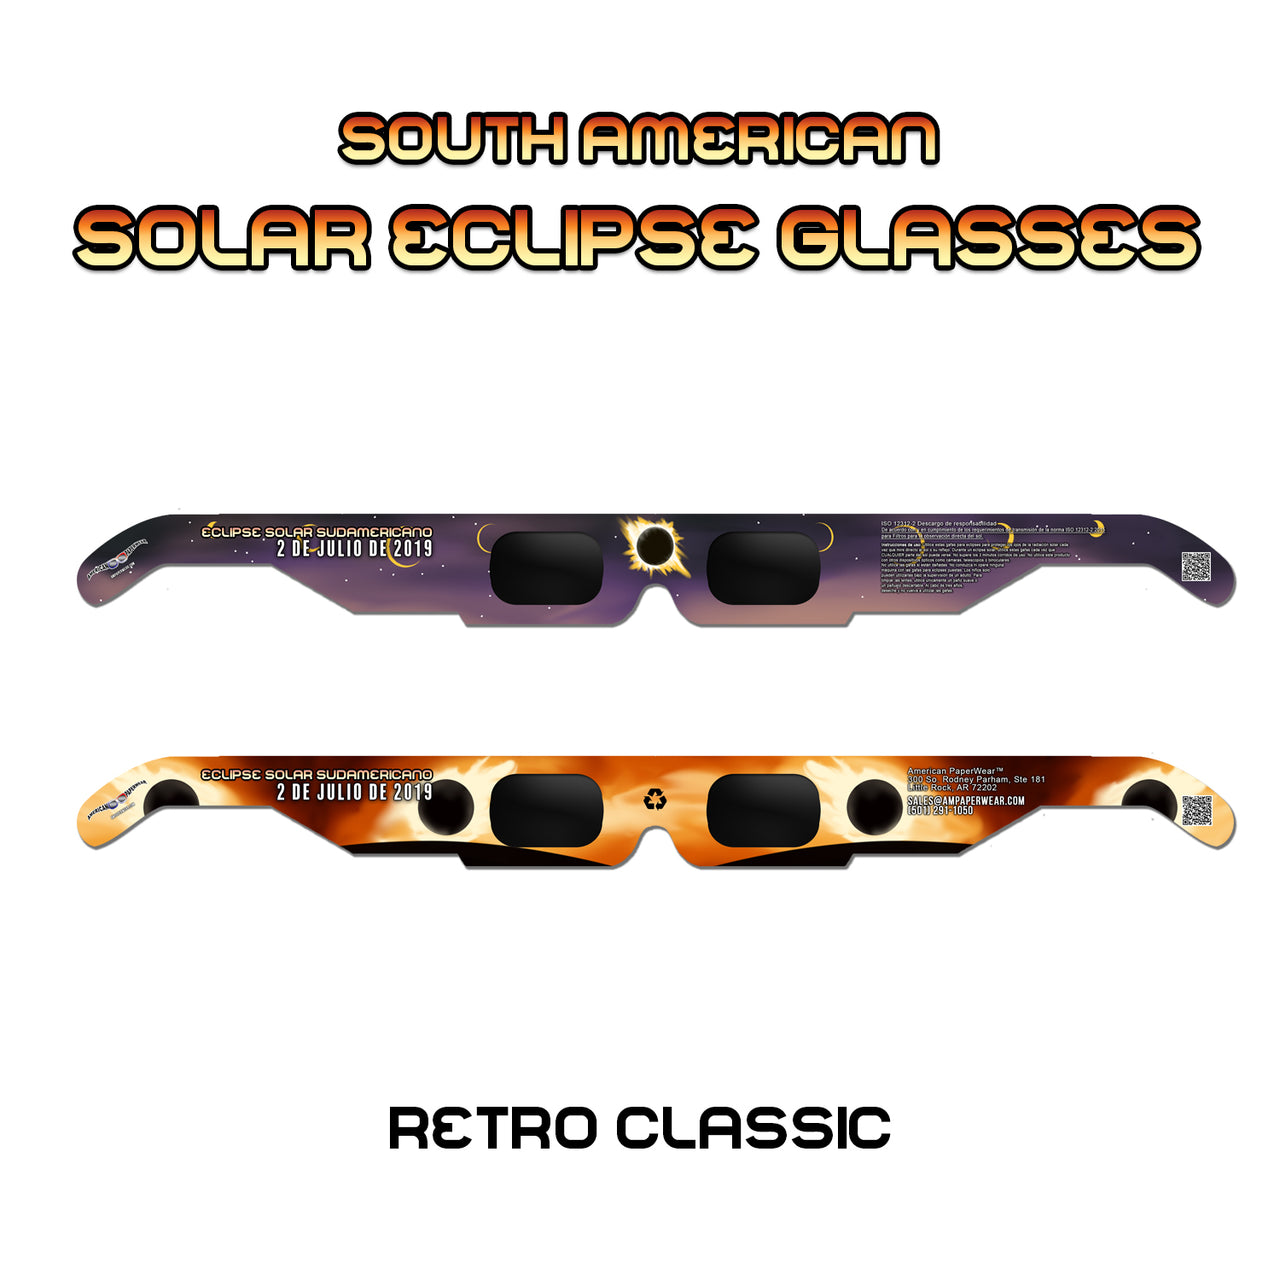 Solar Eclipse Glasses for South American Solar Eclipse, 2019 - American Paperwear